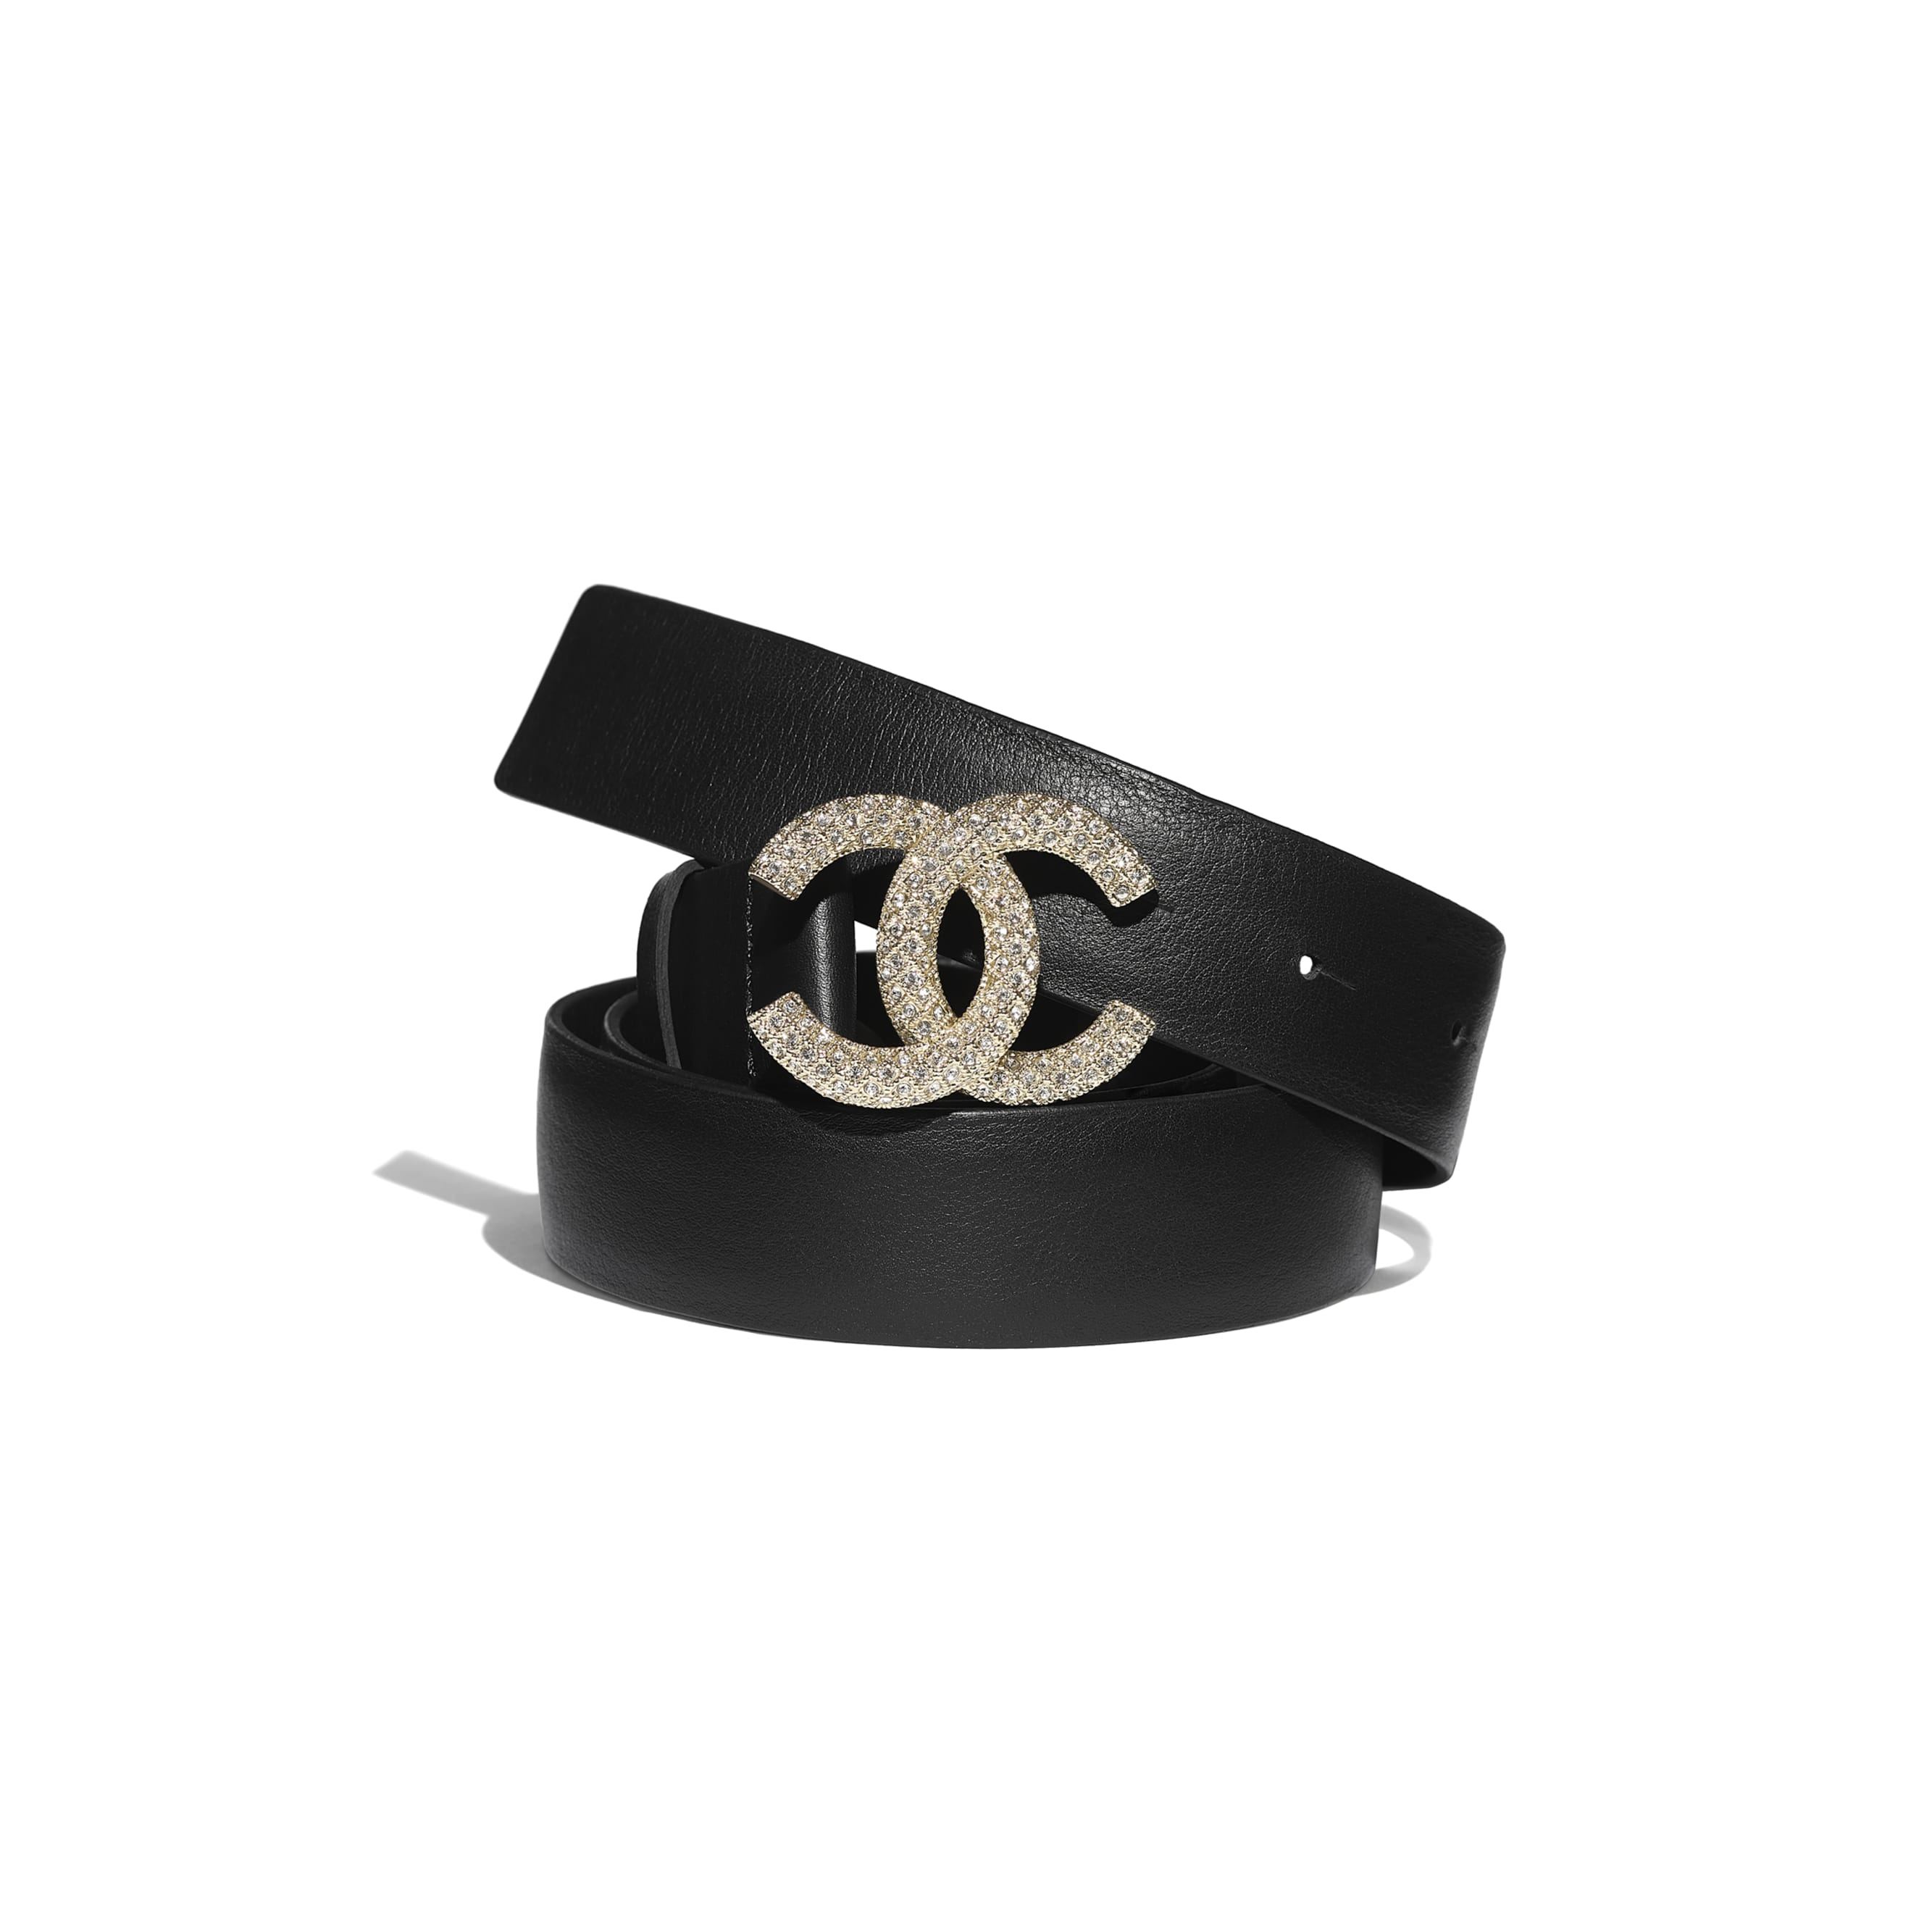 Belt - Black - Calfskin, Gold-Tone Metal & Diamanté - CHANEL - Default view - see standard sized version